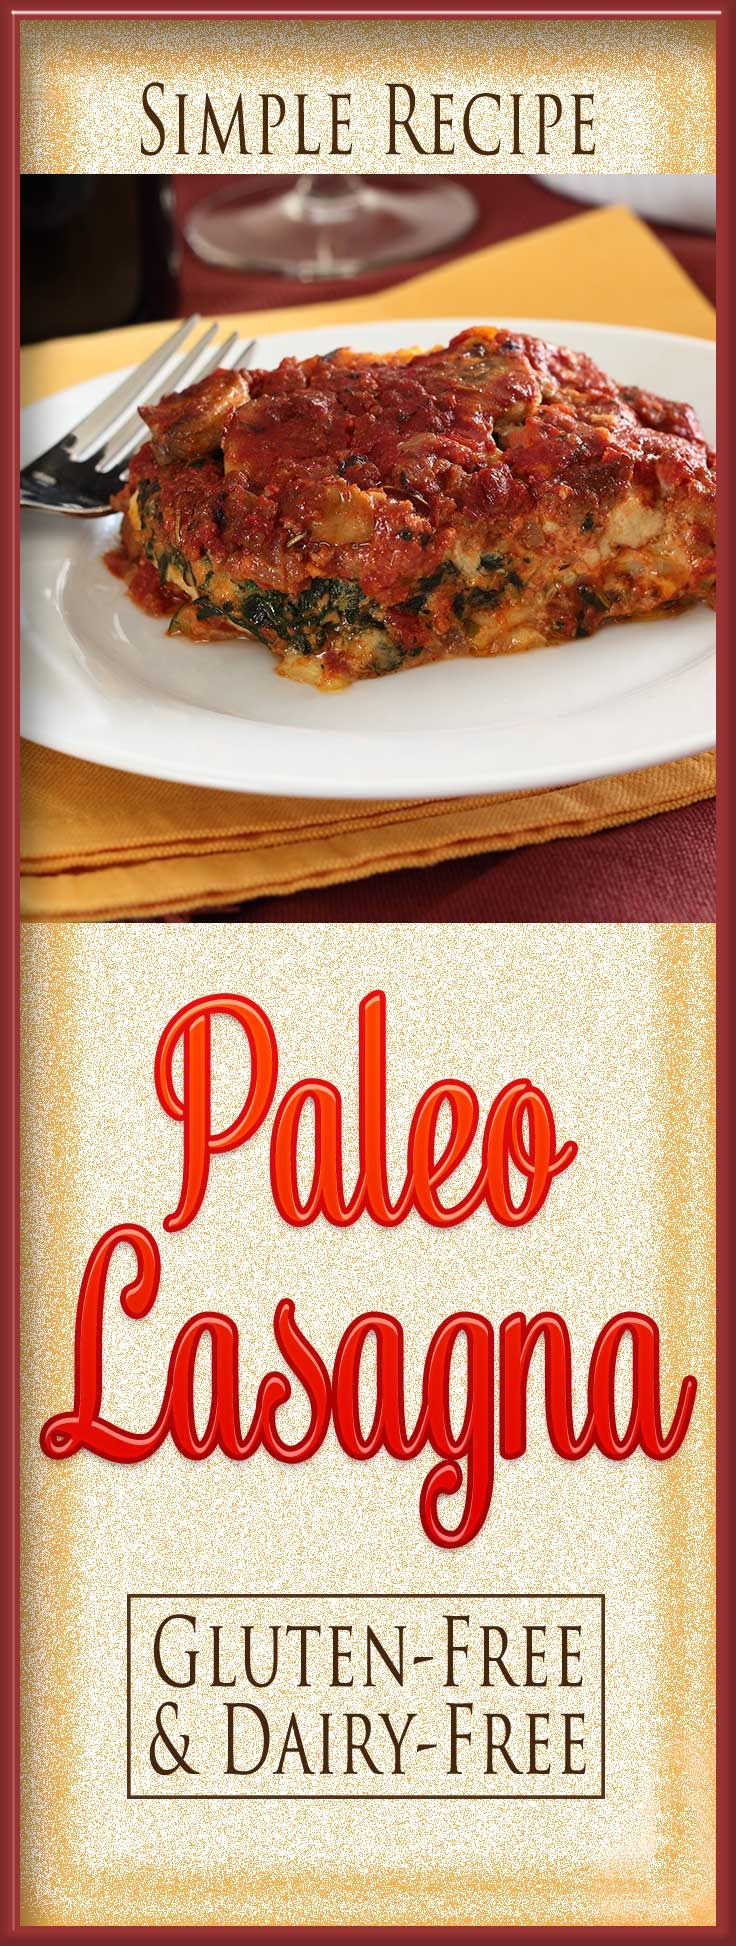 You'll be amazed how close this 100% paleo lasagna tastes to the real thing - without pasta or cheese!